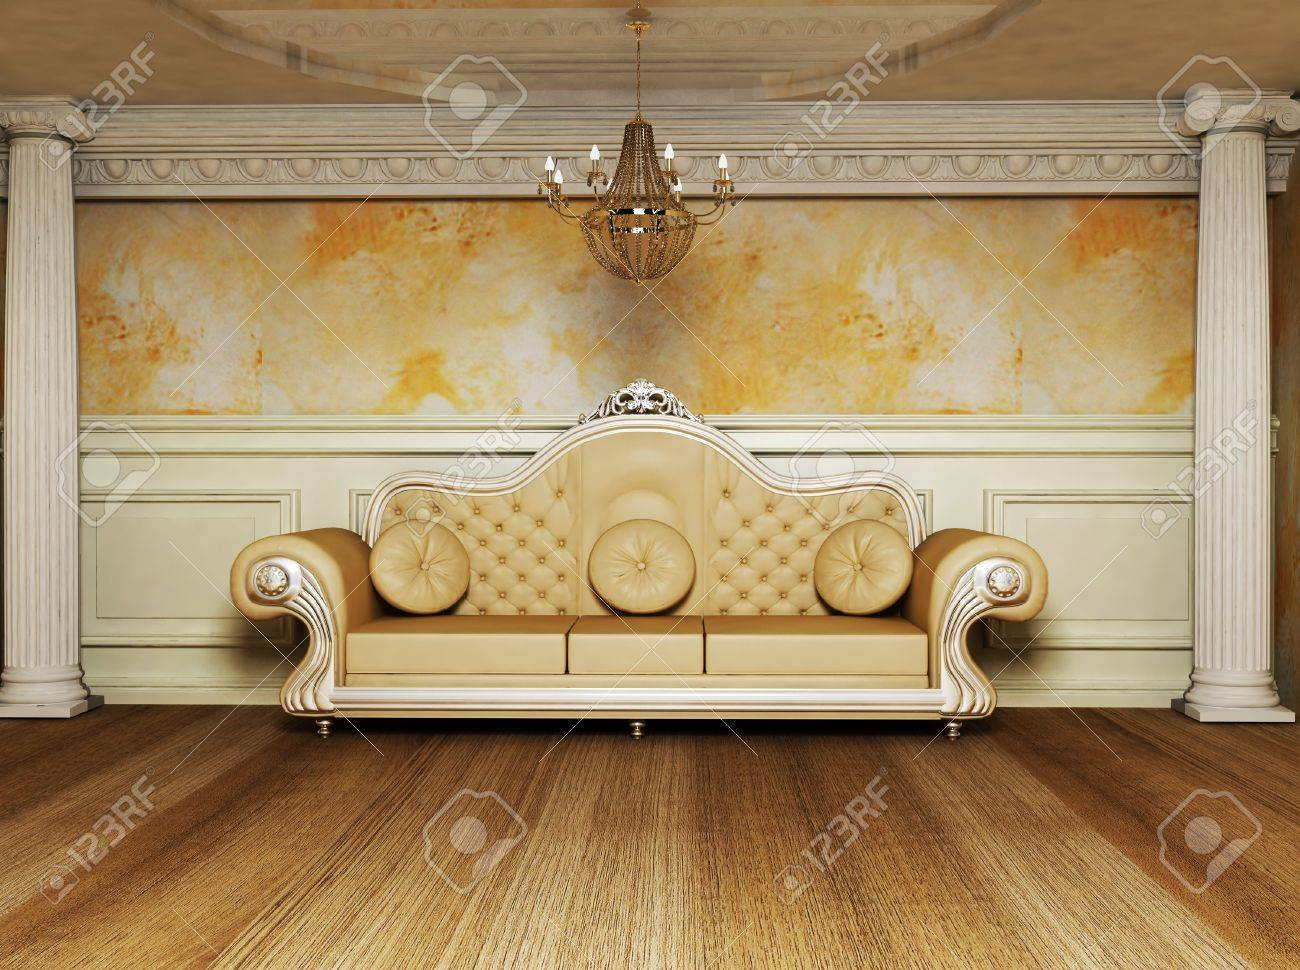 This Is An Antique Interior With A Beautiful Sofa And The Columns Stock  Photo   12867380